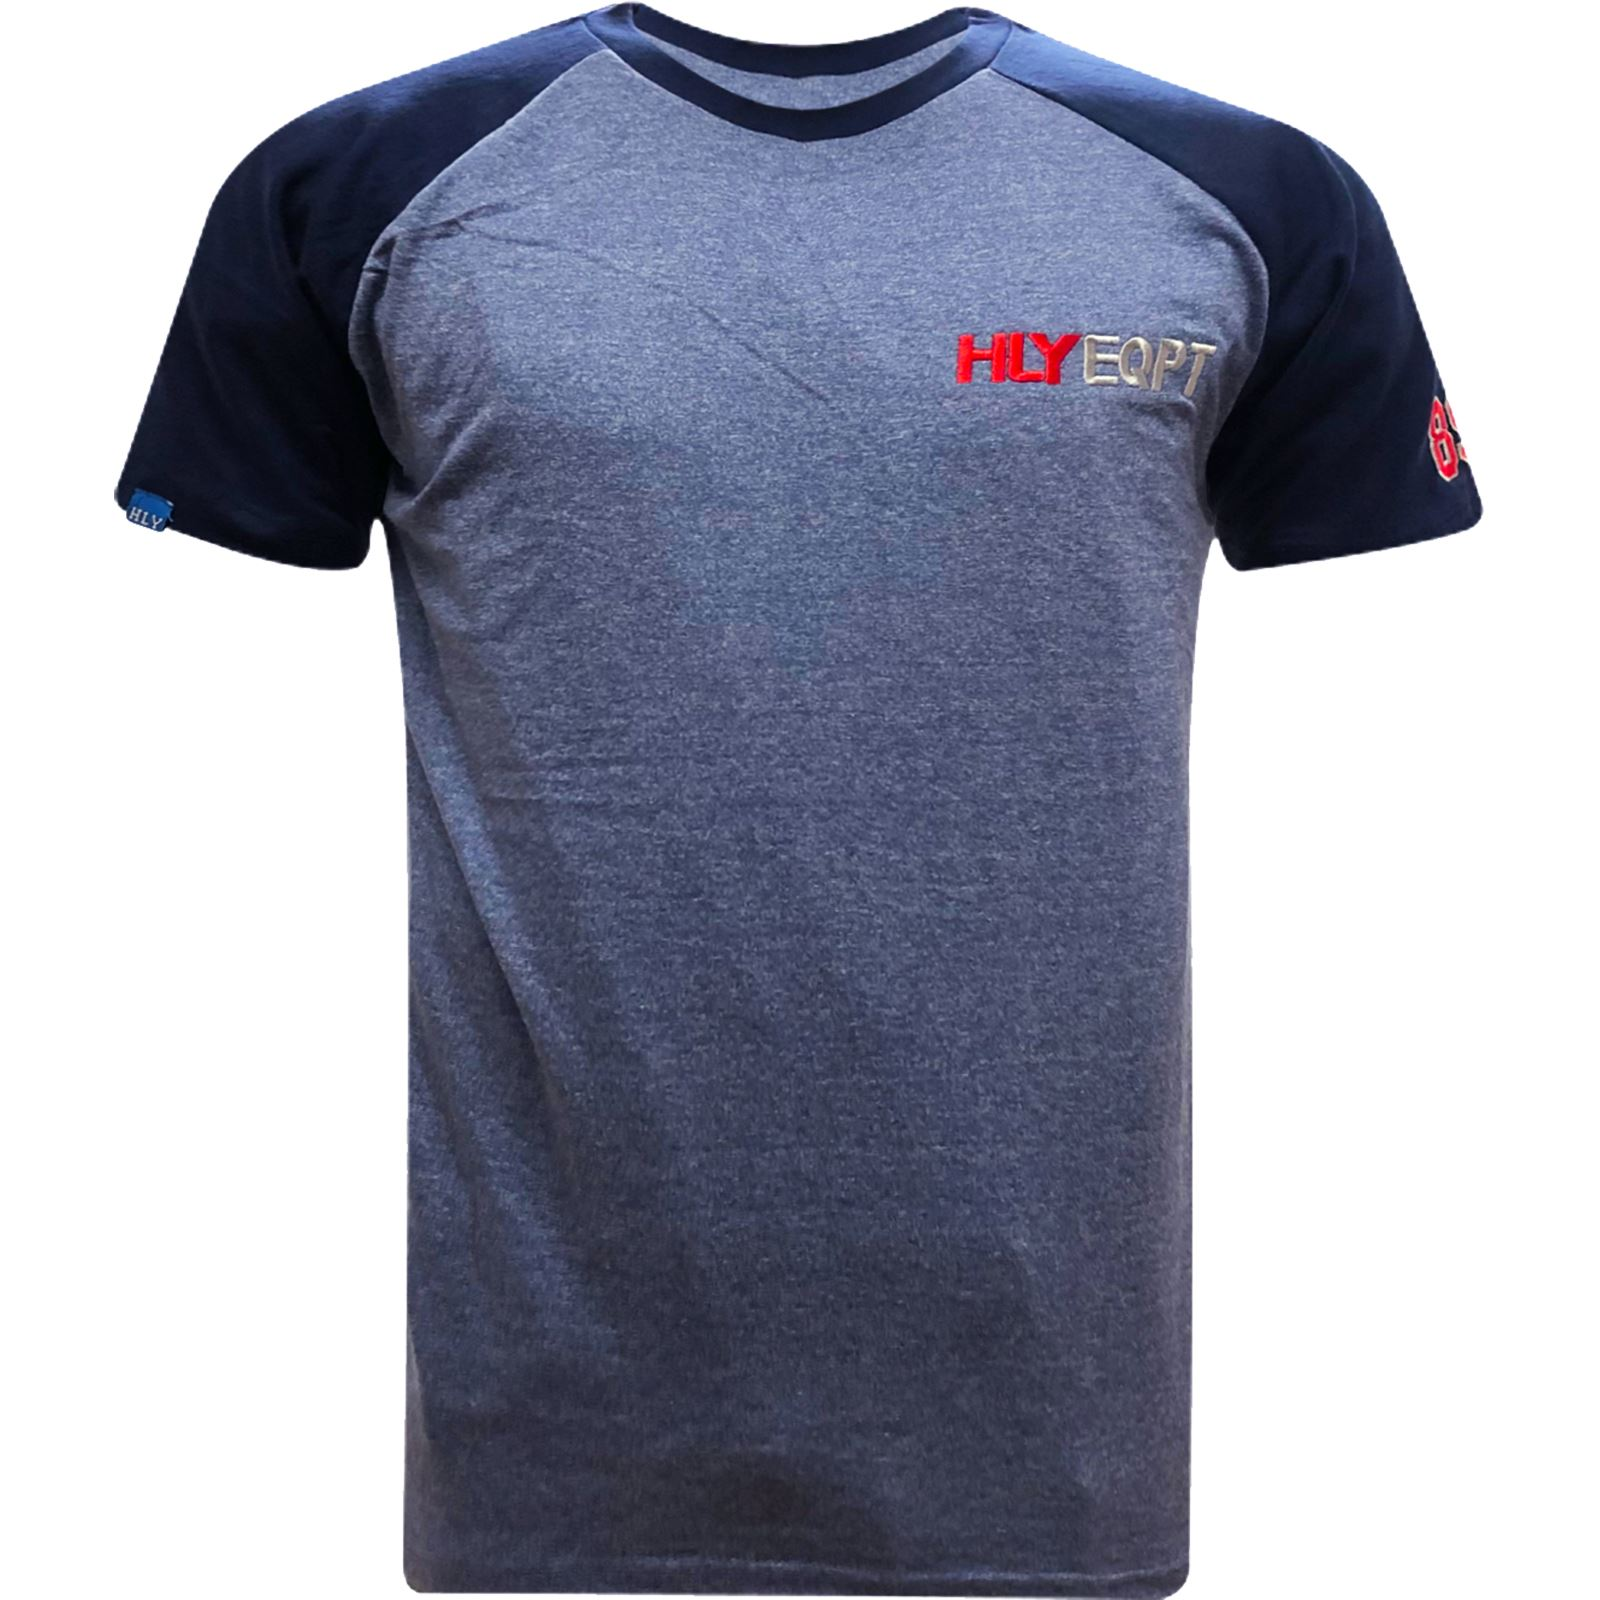 Mens-HLY-EQPT-Printed-T-Shirt-100-Cotton-Gym-Athletic-Training-Tee-Top-Summer thumbnail 40